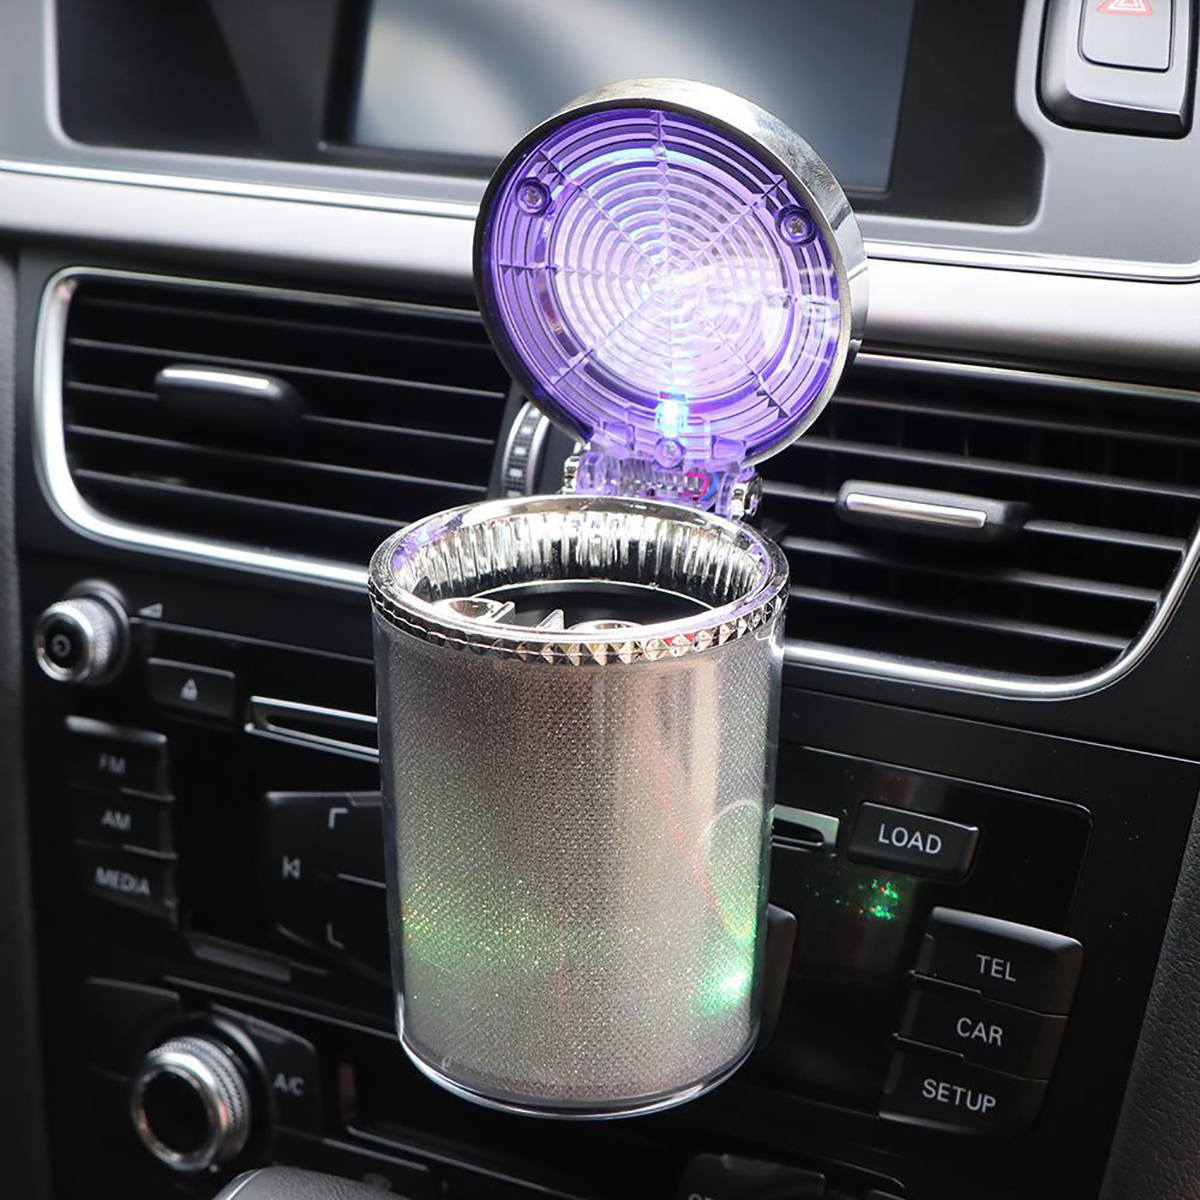 Portable Cylinder Car Ashtray Portable Cigarette Ashtray Smokeless Colorful LED Light Indicator Auto Ashtray Styling Accessories